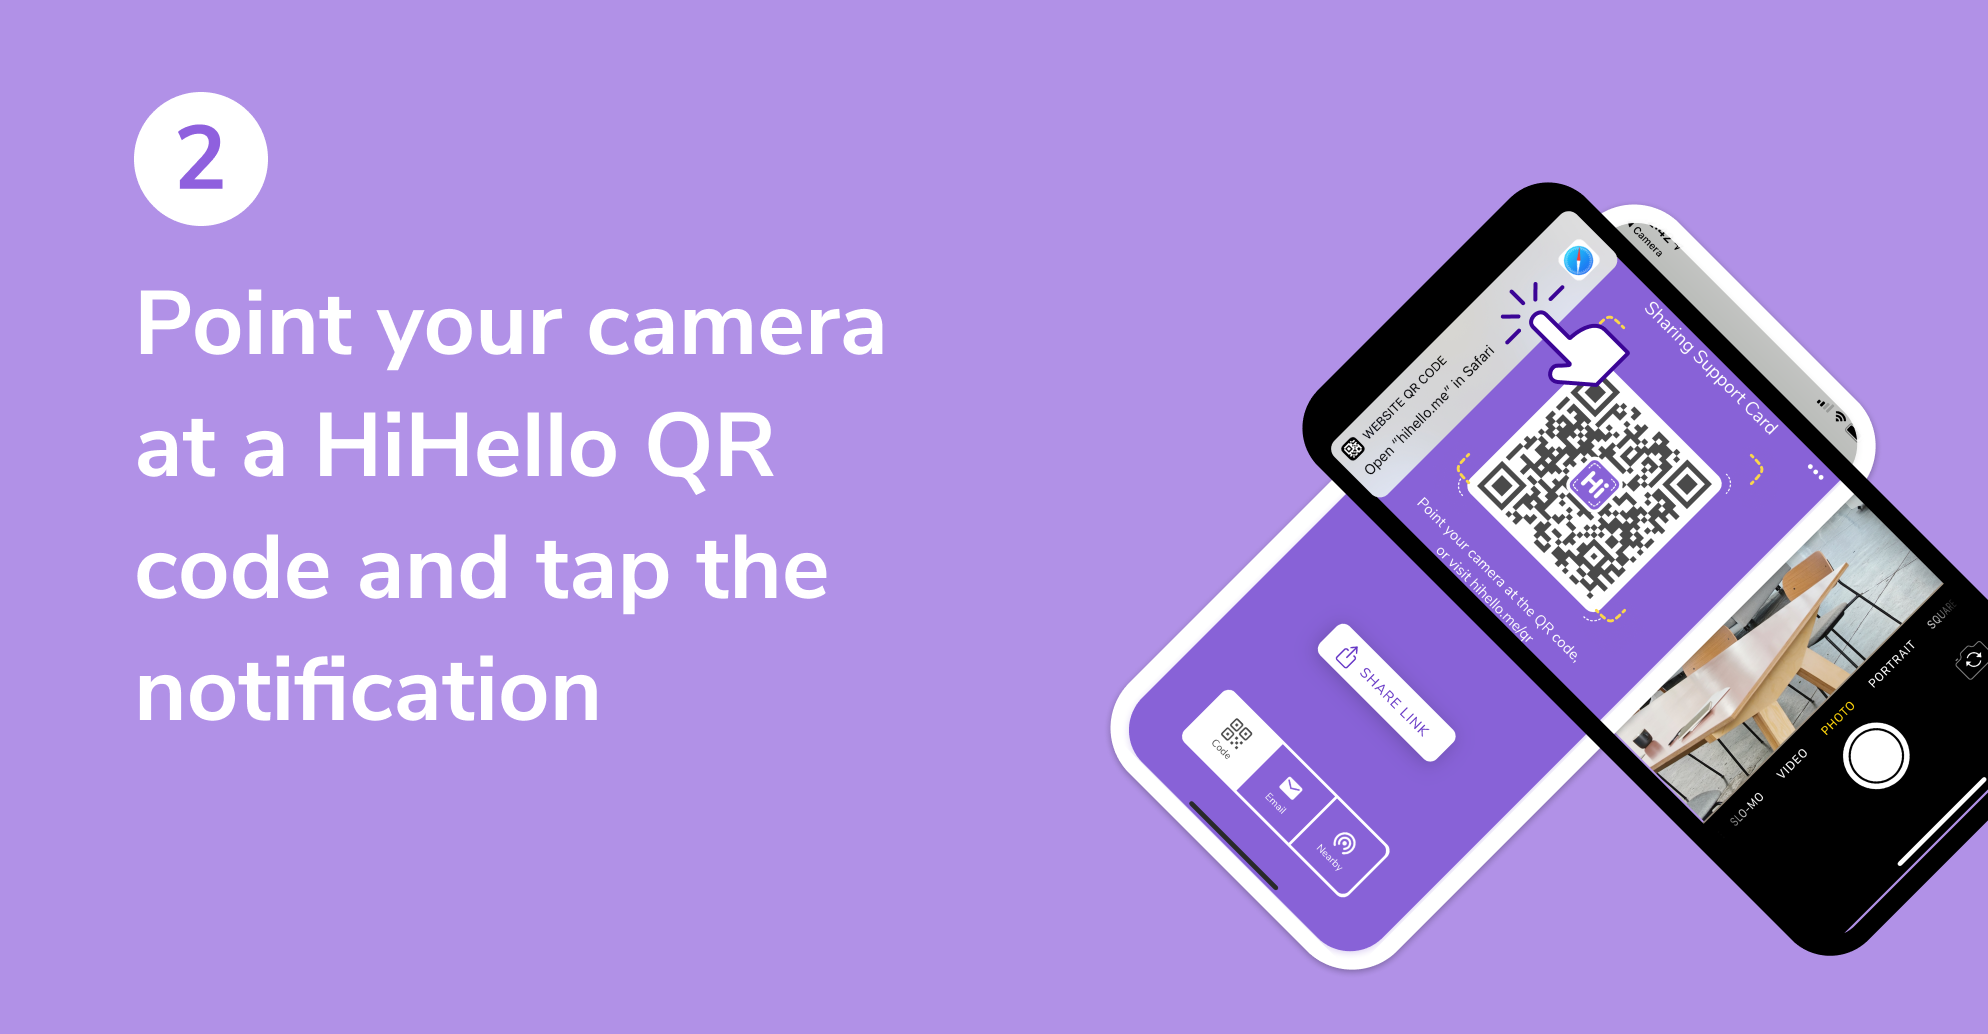 The native Camera app scanning a HiHello QR code on another phone